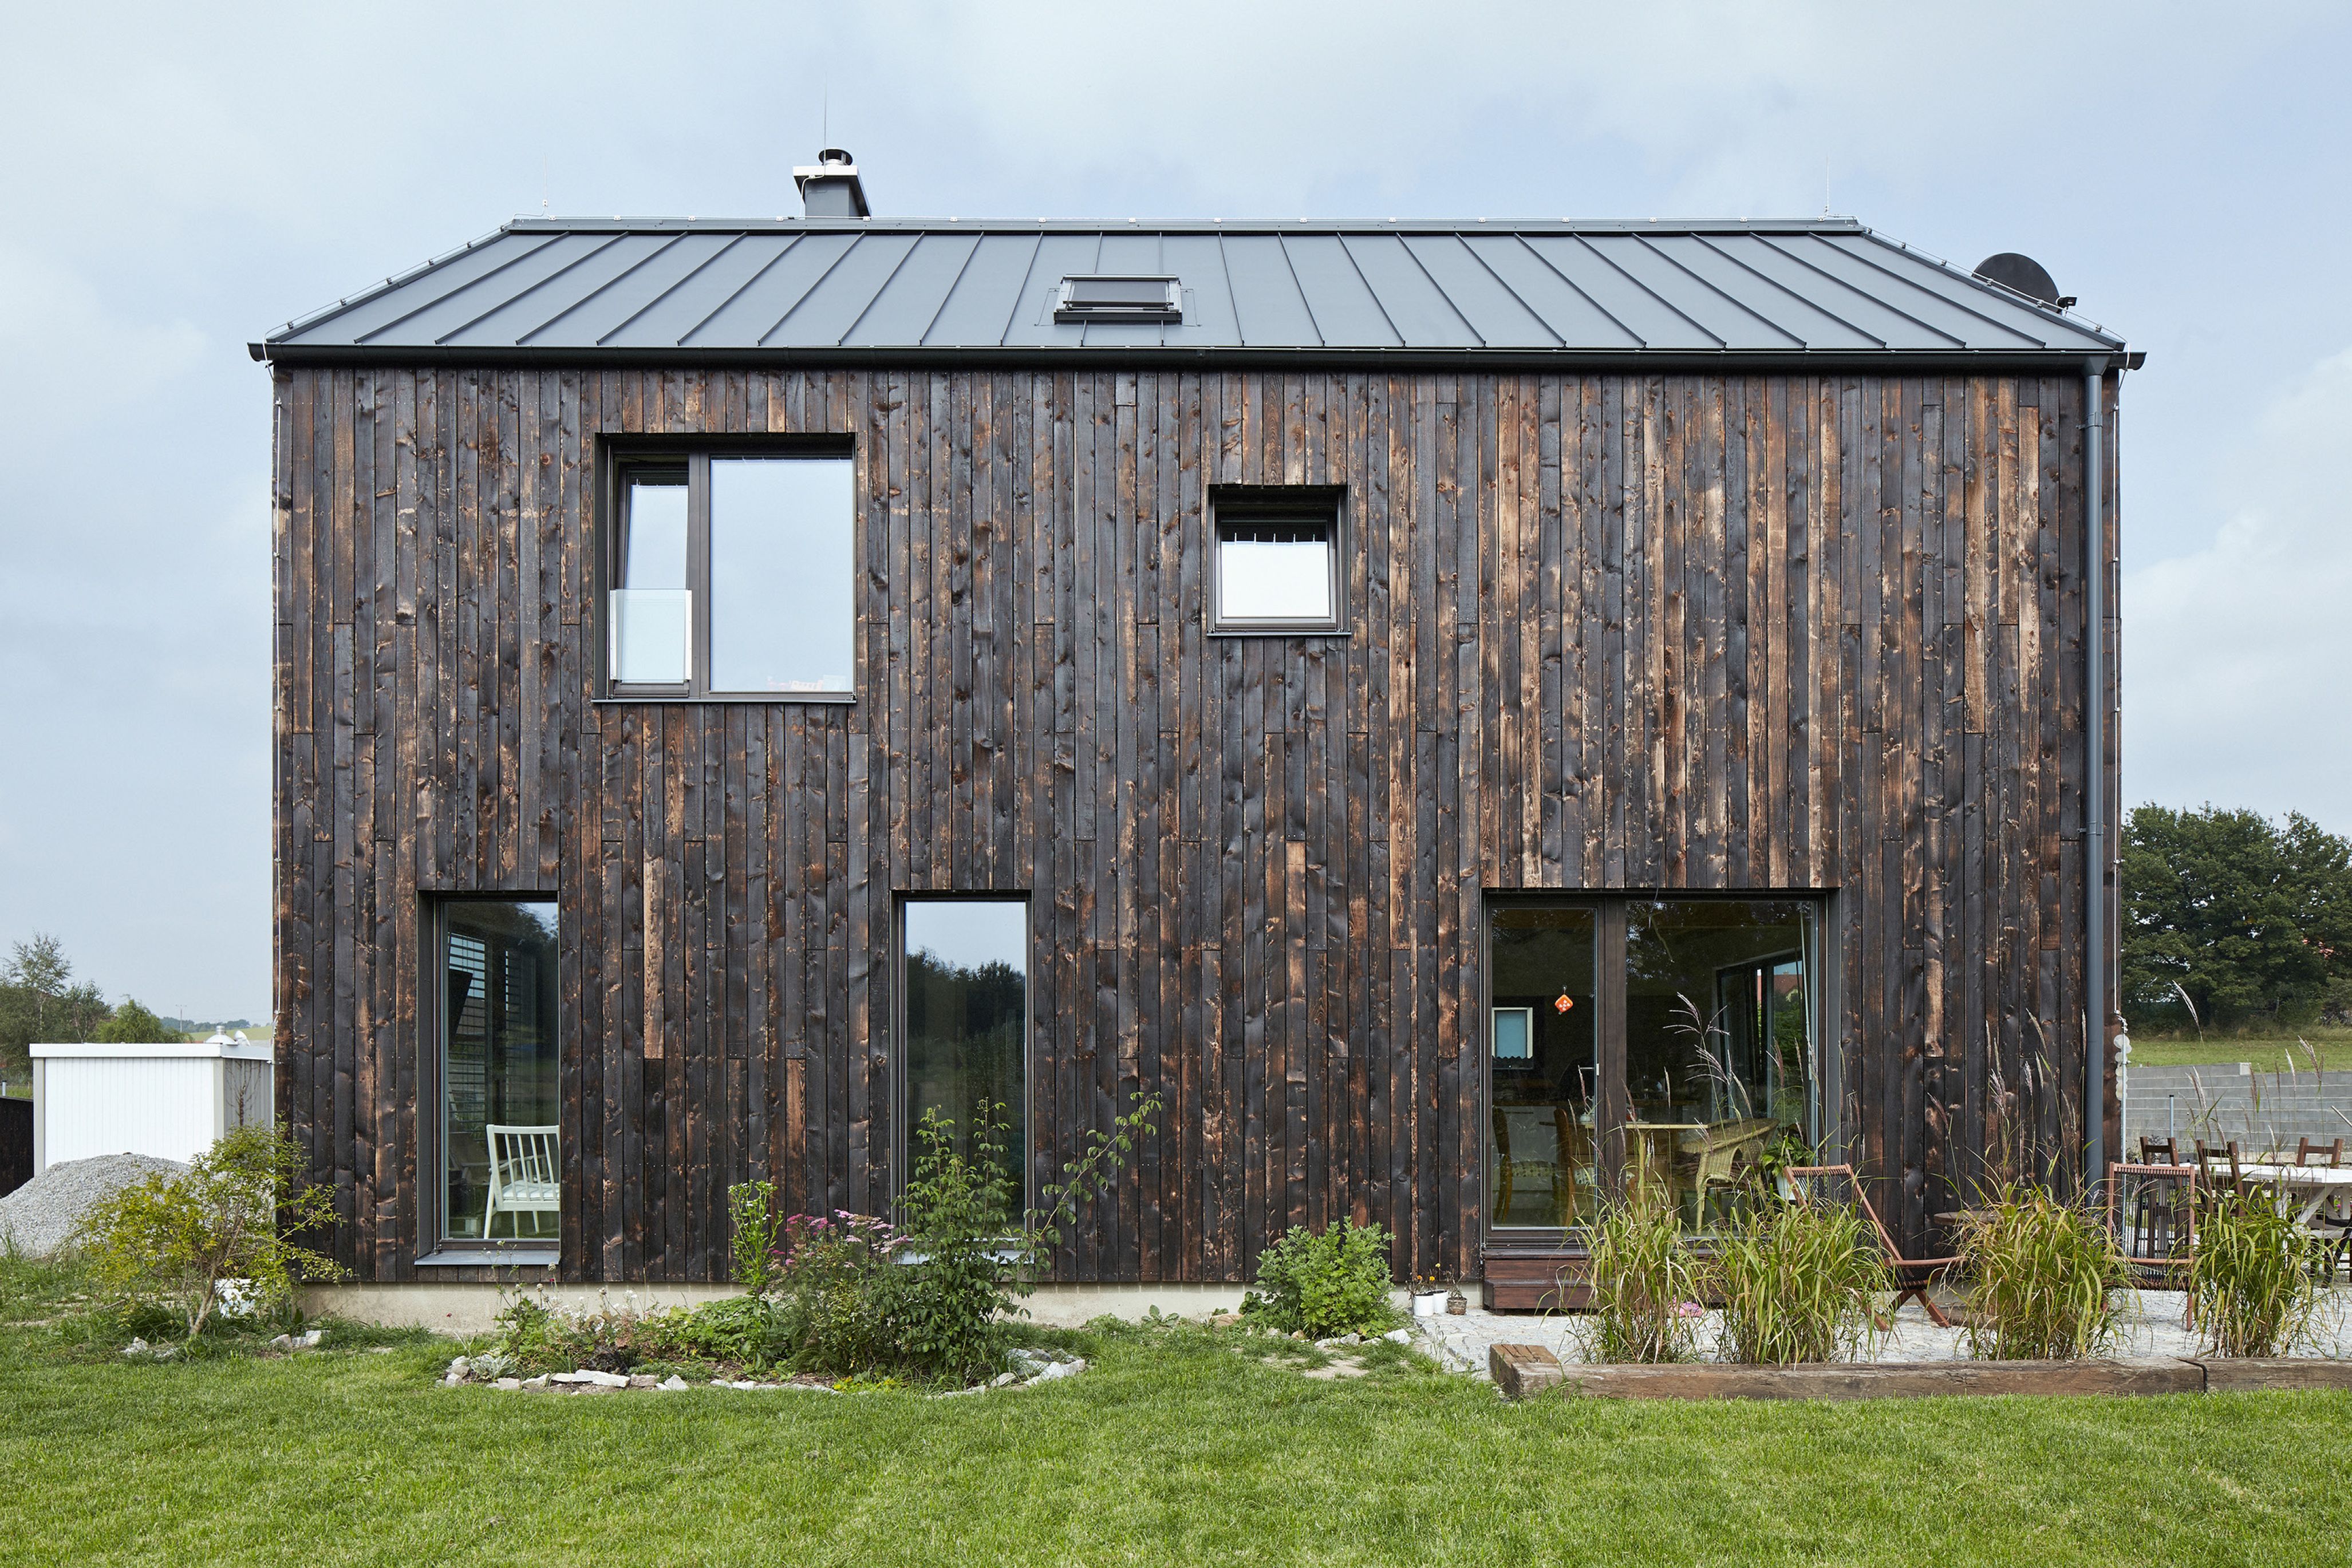 Shou Sugi Ban Five Charred Timber Facades Phaidon Atlas The Interior Has A  Palette Of White. Shou Sugi Ban Five Charred Timber Facades Phaidon Atlas The